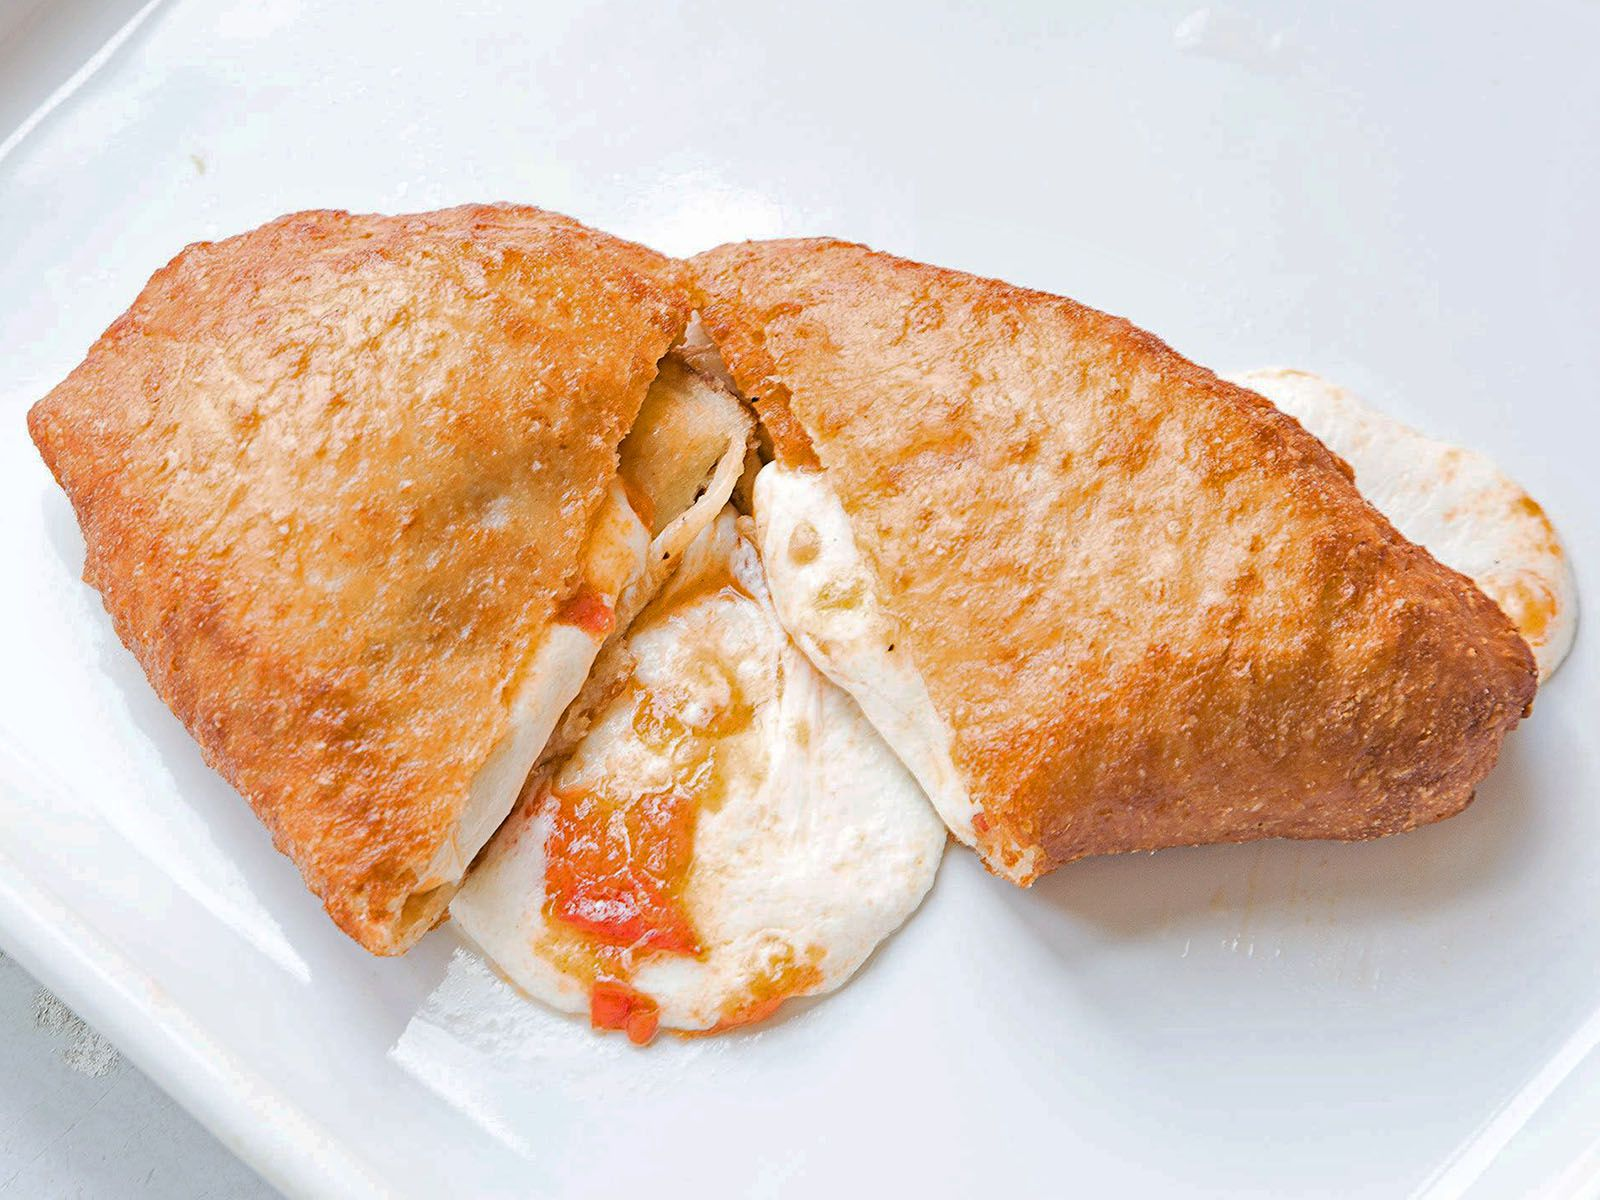 "Italian <em>panzerotti</em> are semi-circular pockets of bread that are usually filled with cheese, deep-fried, and eaten hot. SAVEUR intern Suhashini Sarkar first tried these in Milan; her sister has since developed her own recipe that uses a sauce made from fresh tomatoes. It's reminiscent of pizza, but deep-fried and portable. Get the recipe for <a href=""https://www.saveur.com/fresh-tomato-and-mozzarella-panzerotti-recipe/"">Fresh Tomato and Mozzarella Panzerotti</a>"